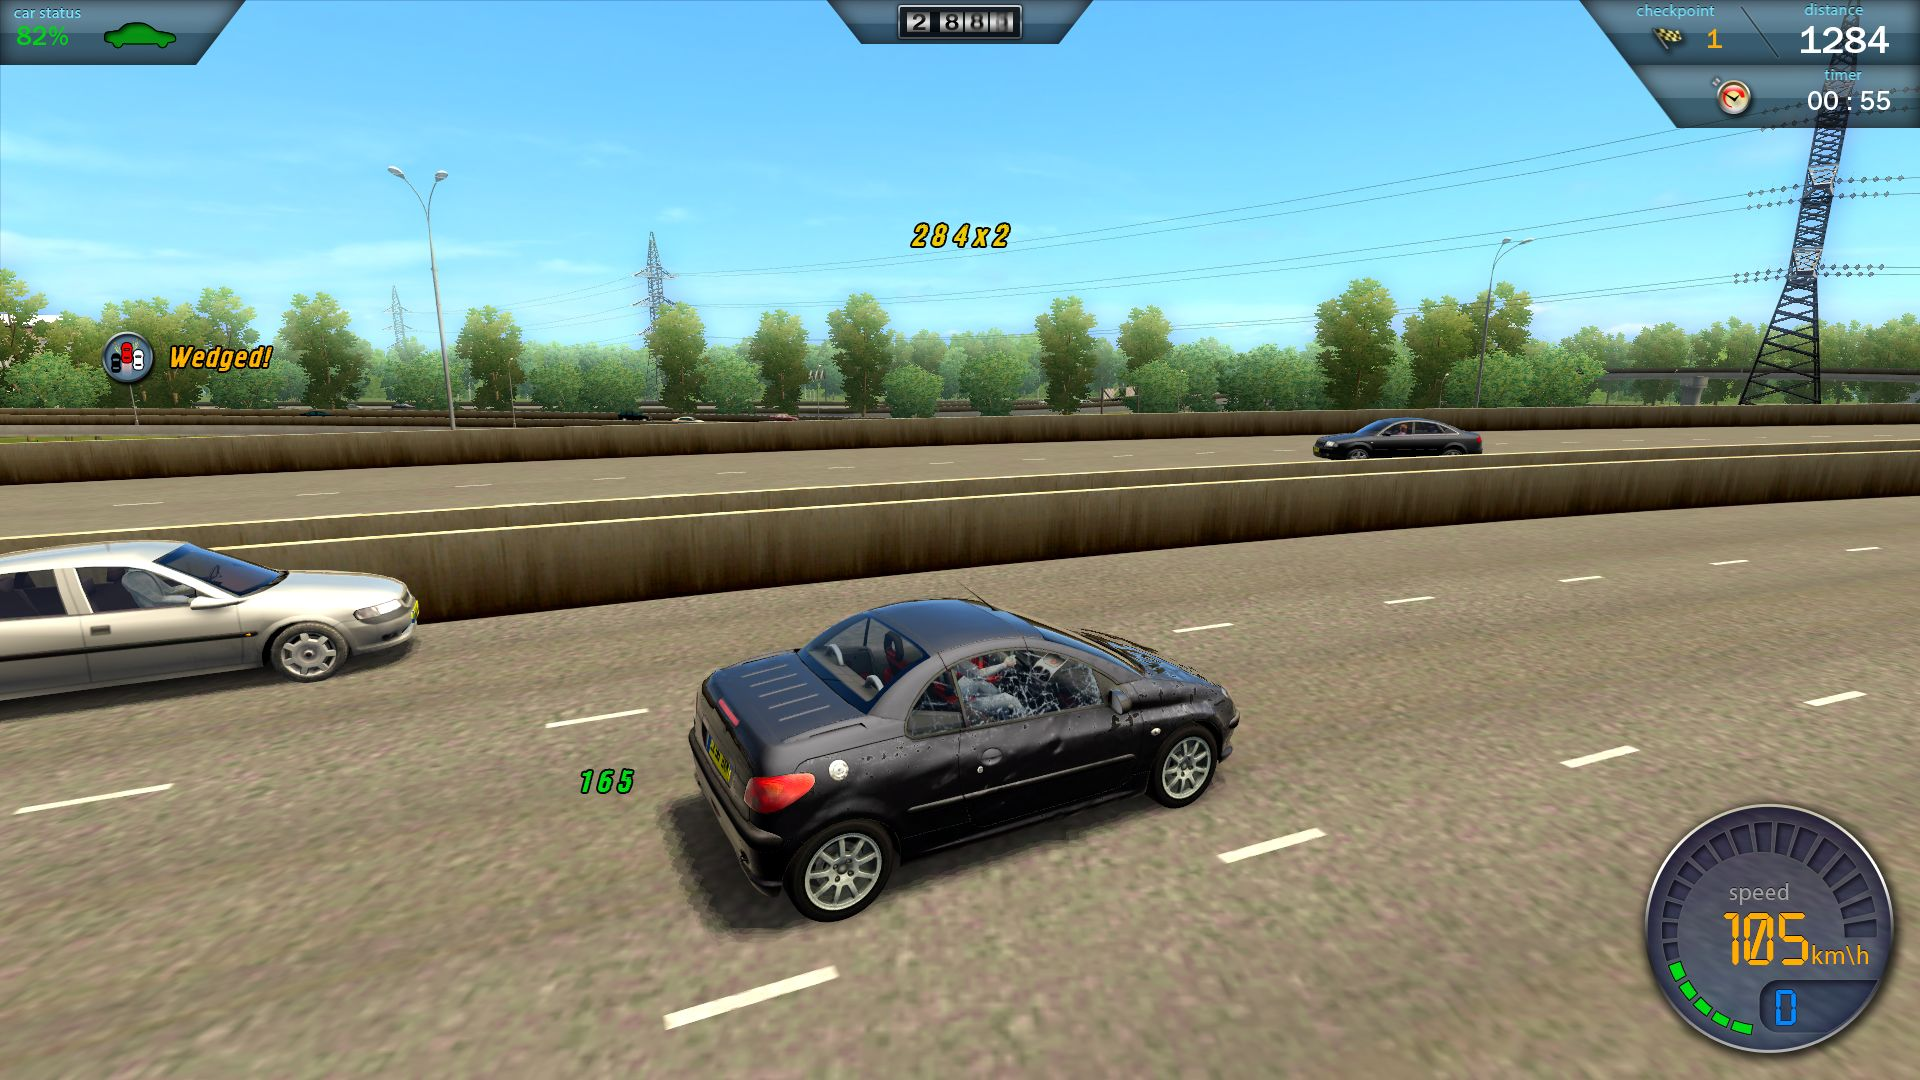 City Car Driving Game Hotkeys Defkey